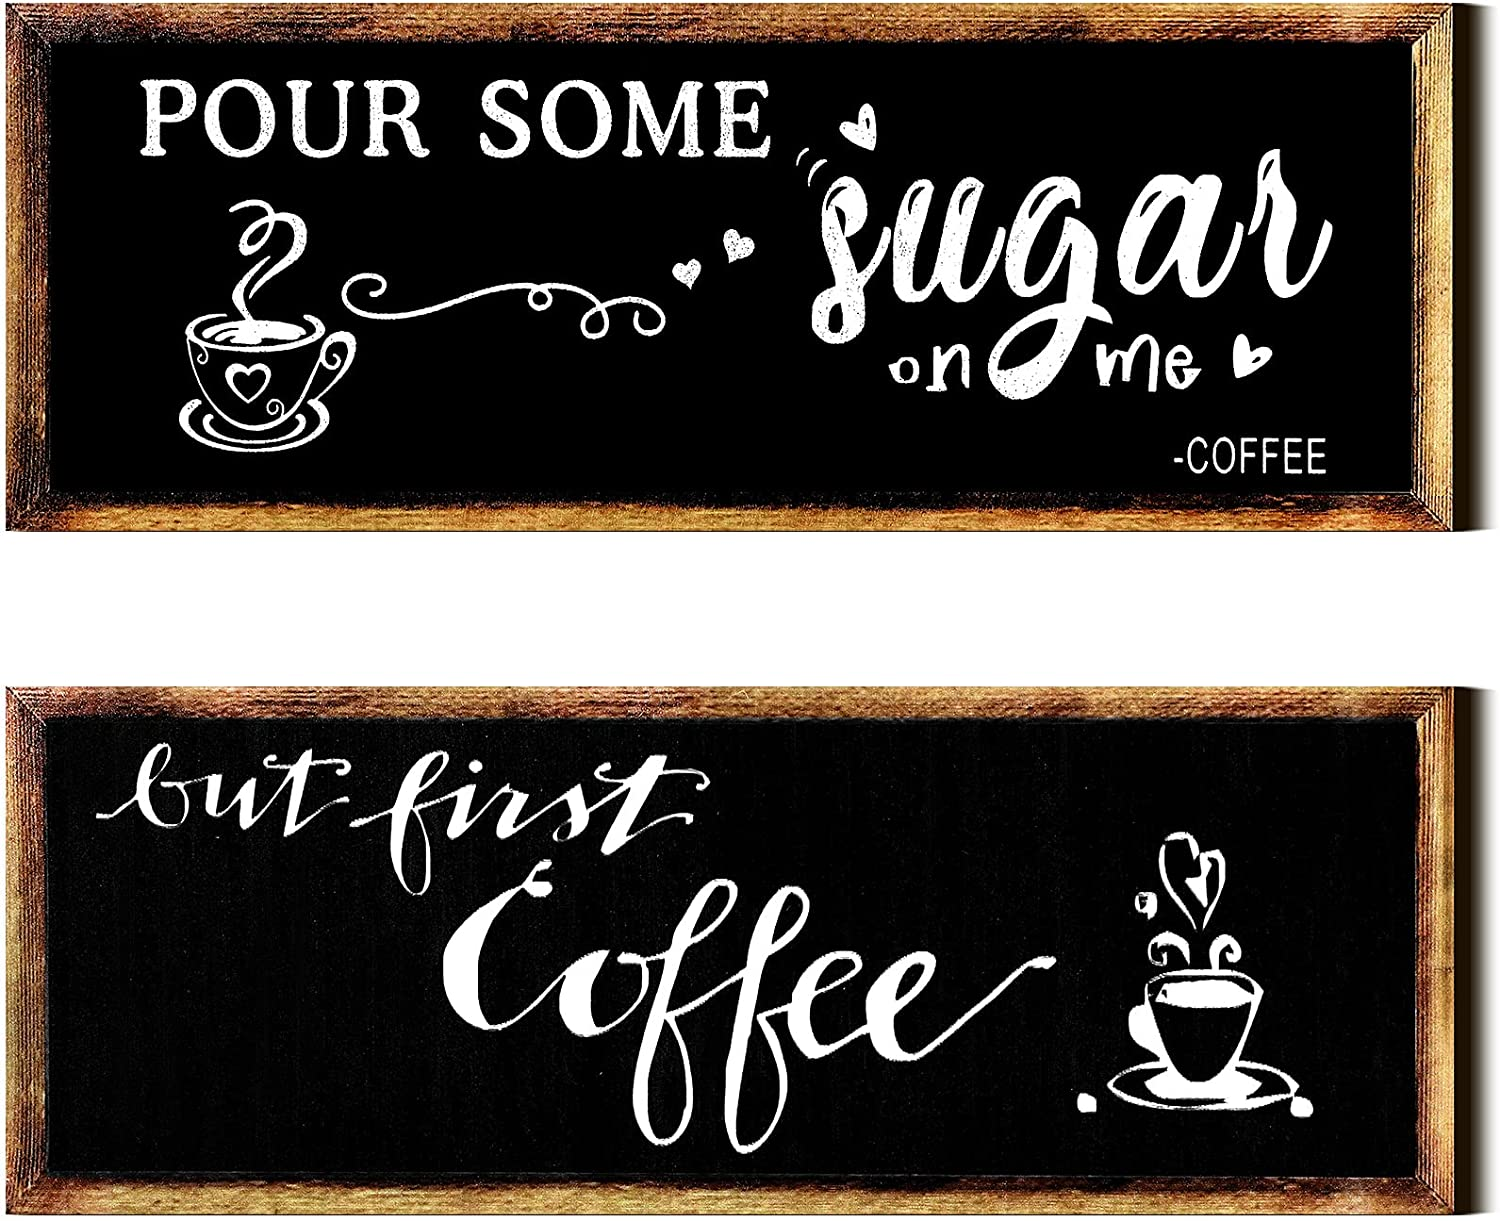 2 Pieces Farmhouse Coffee Signs Pour Some Sugar on Me - Coffee Sign and But First Coffee Wood Wall Sign Coffee Bar Decor for Office Home Wall Table Decor, 4.7 x 13.8 Inch (Black)